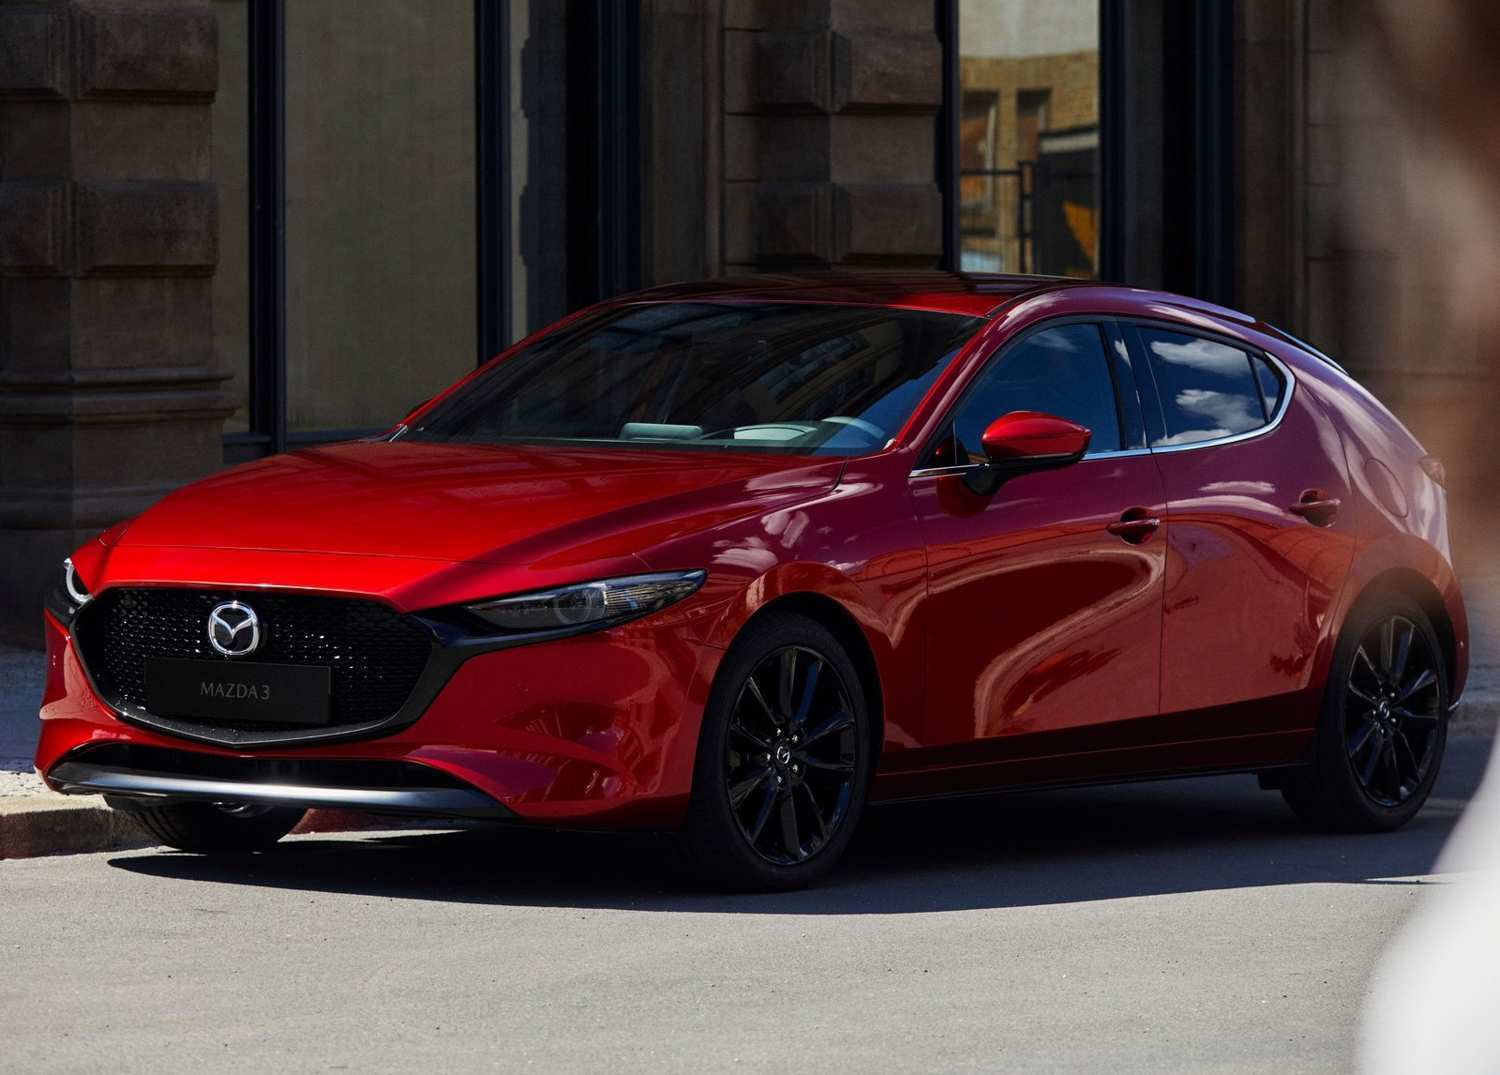 15 All New Mazda 3 2019 Forum New Concept for Mazda 3 2019 Forum